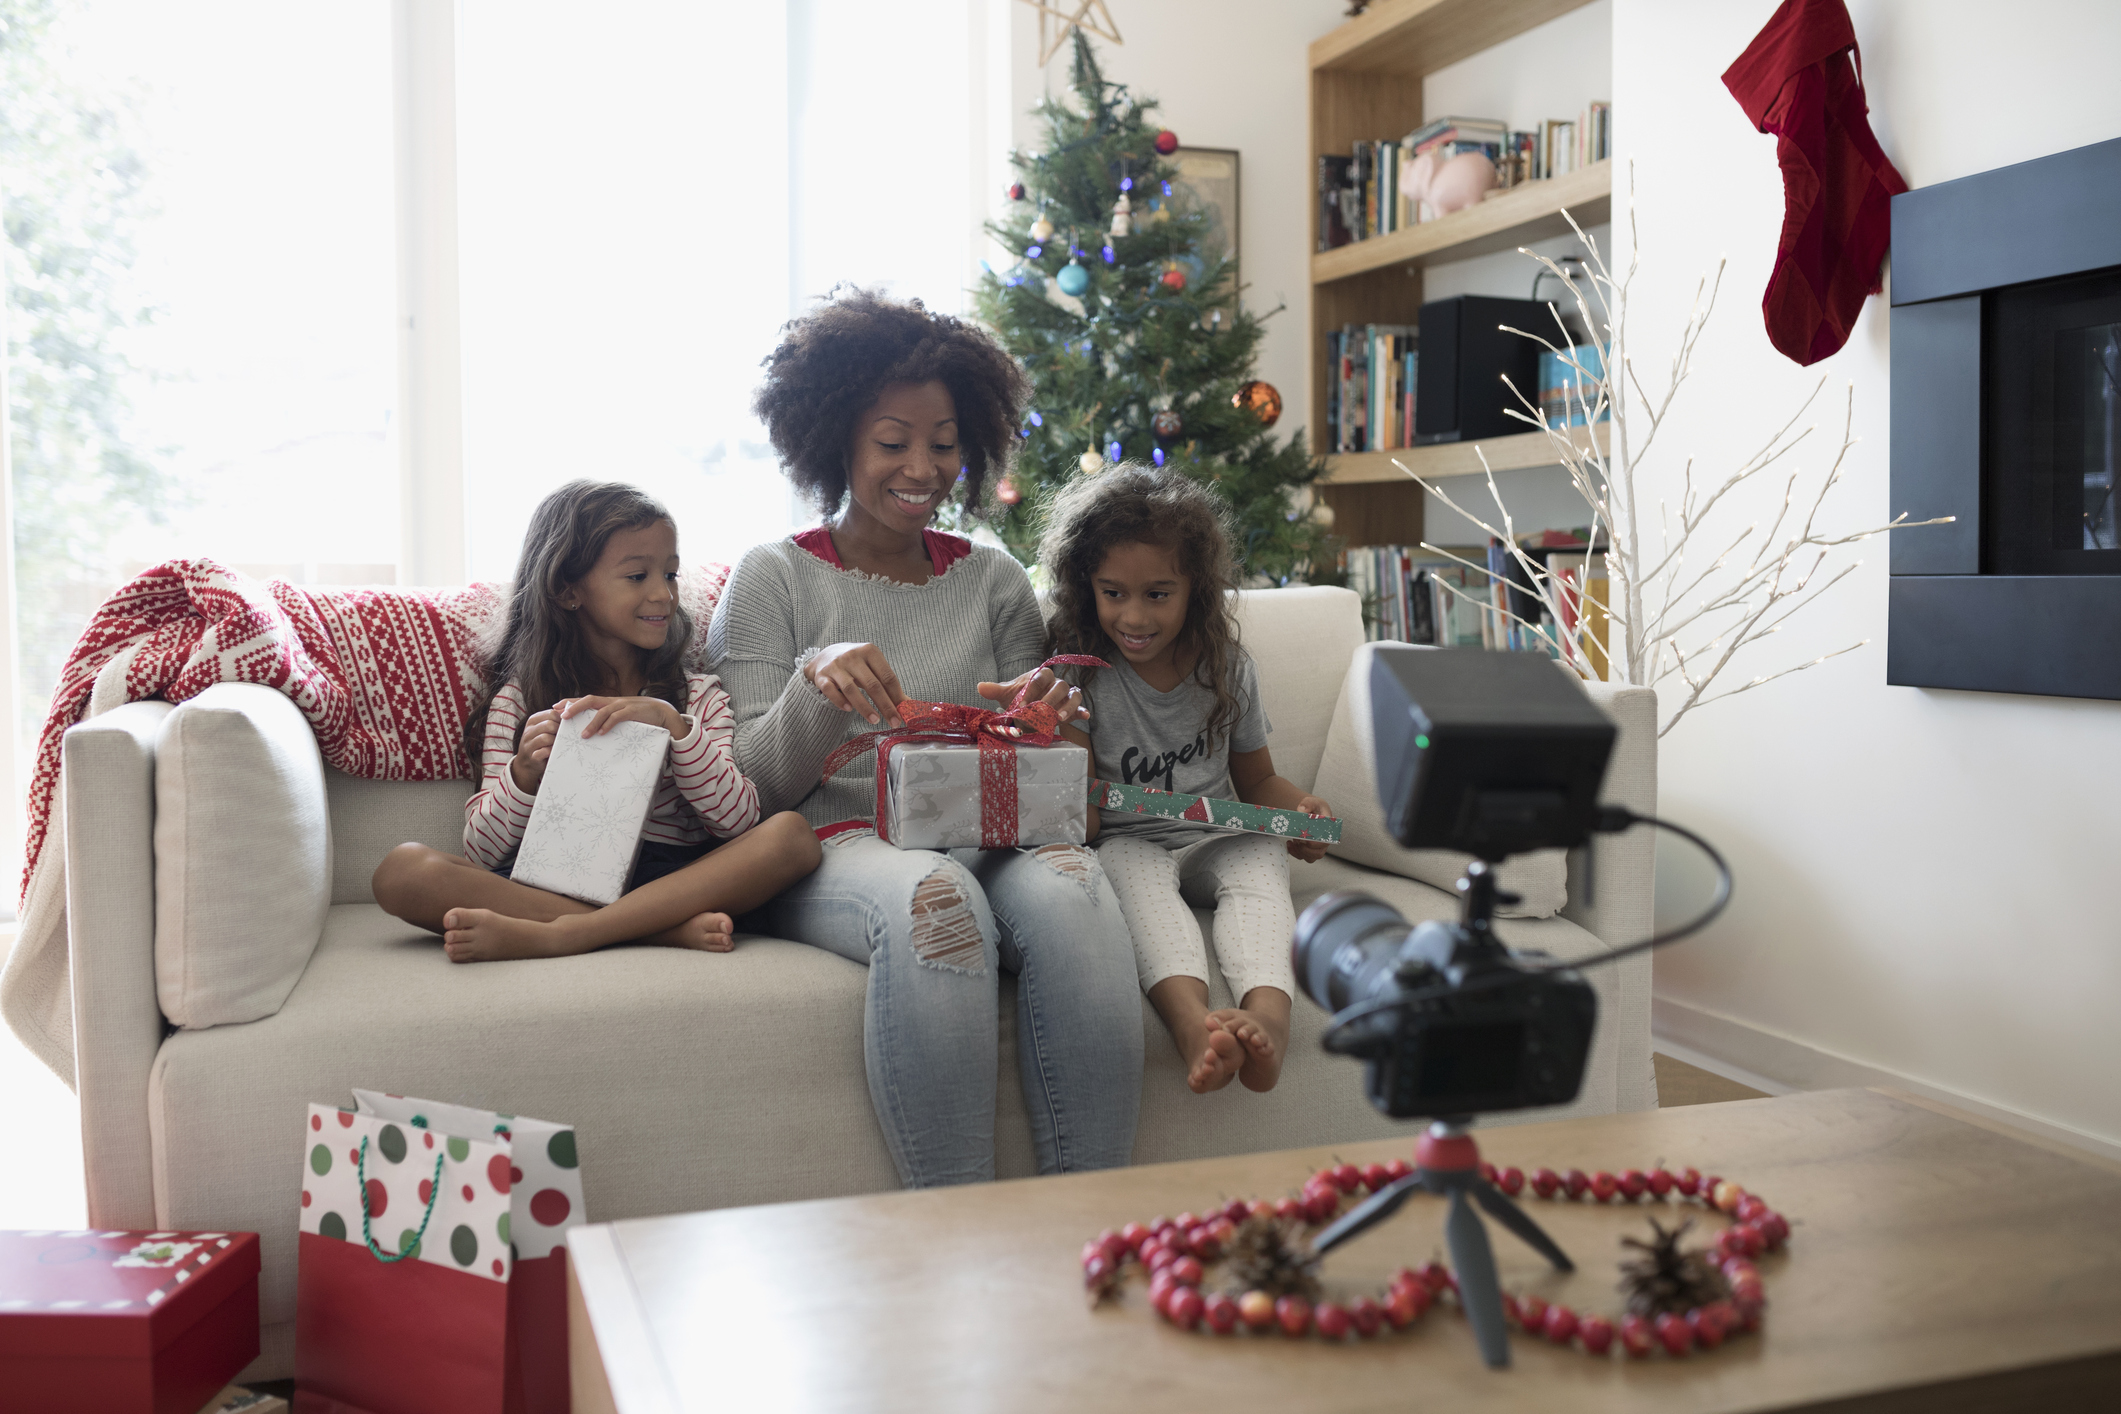 Mother and daughters opening Christmas gifts for video camera in living room